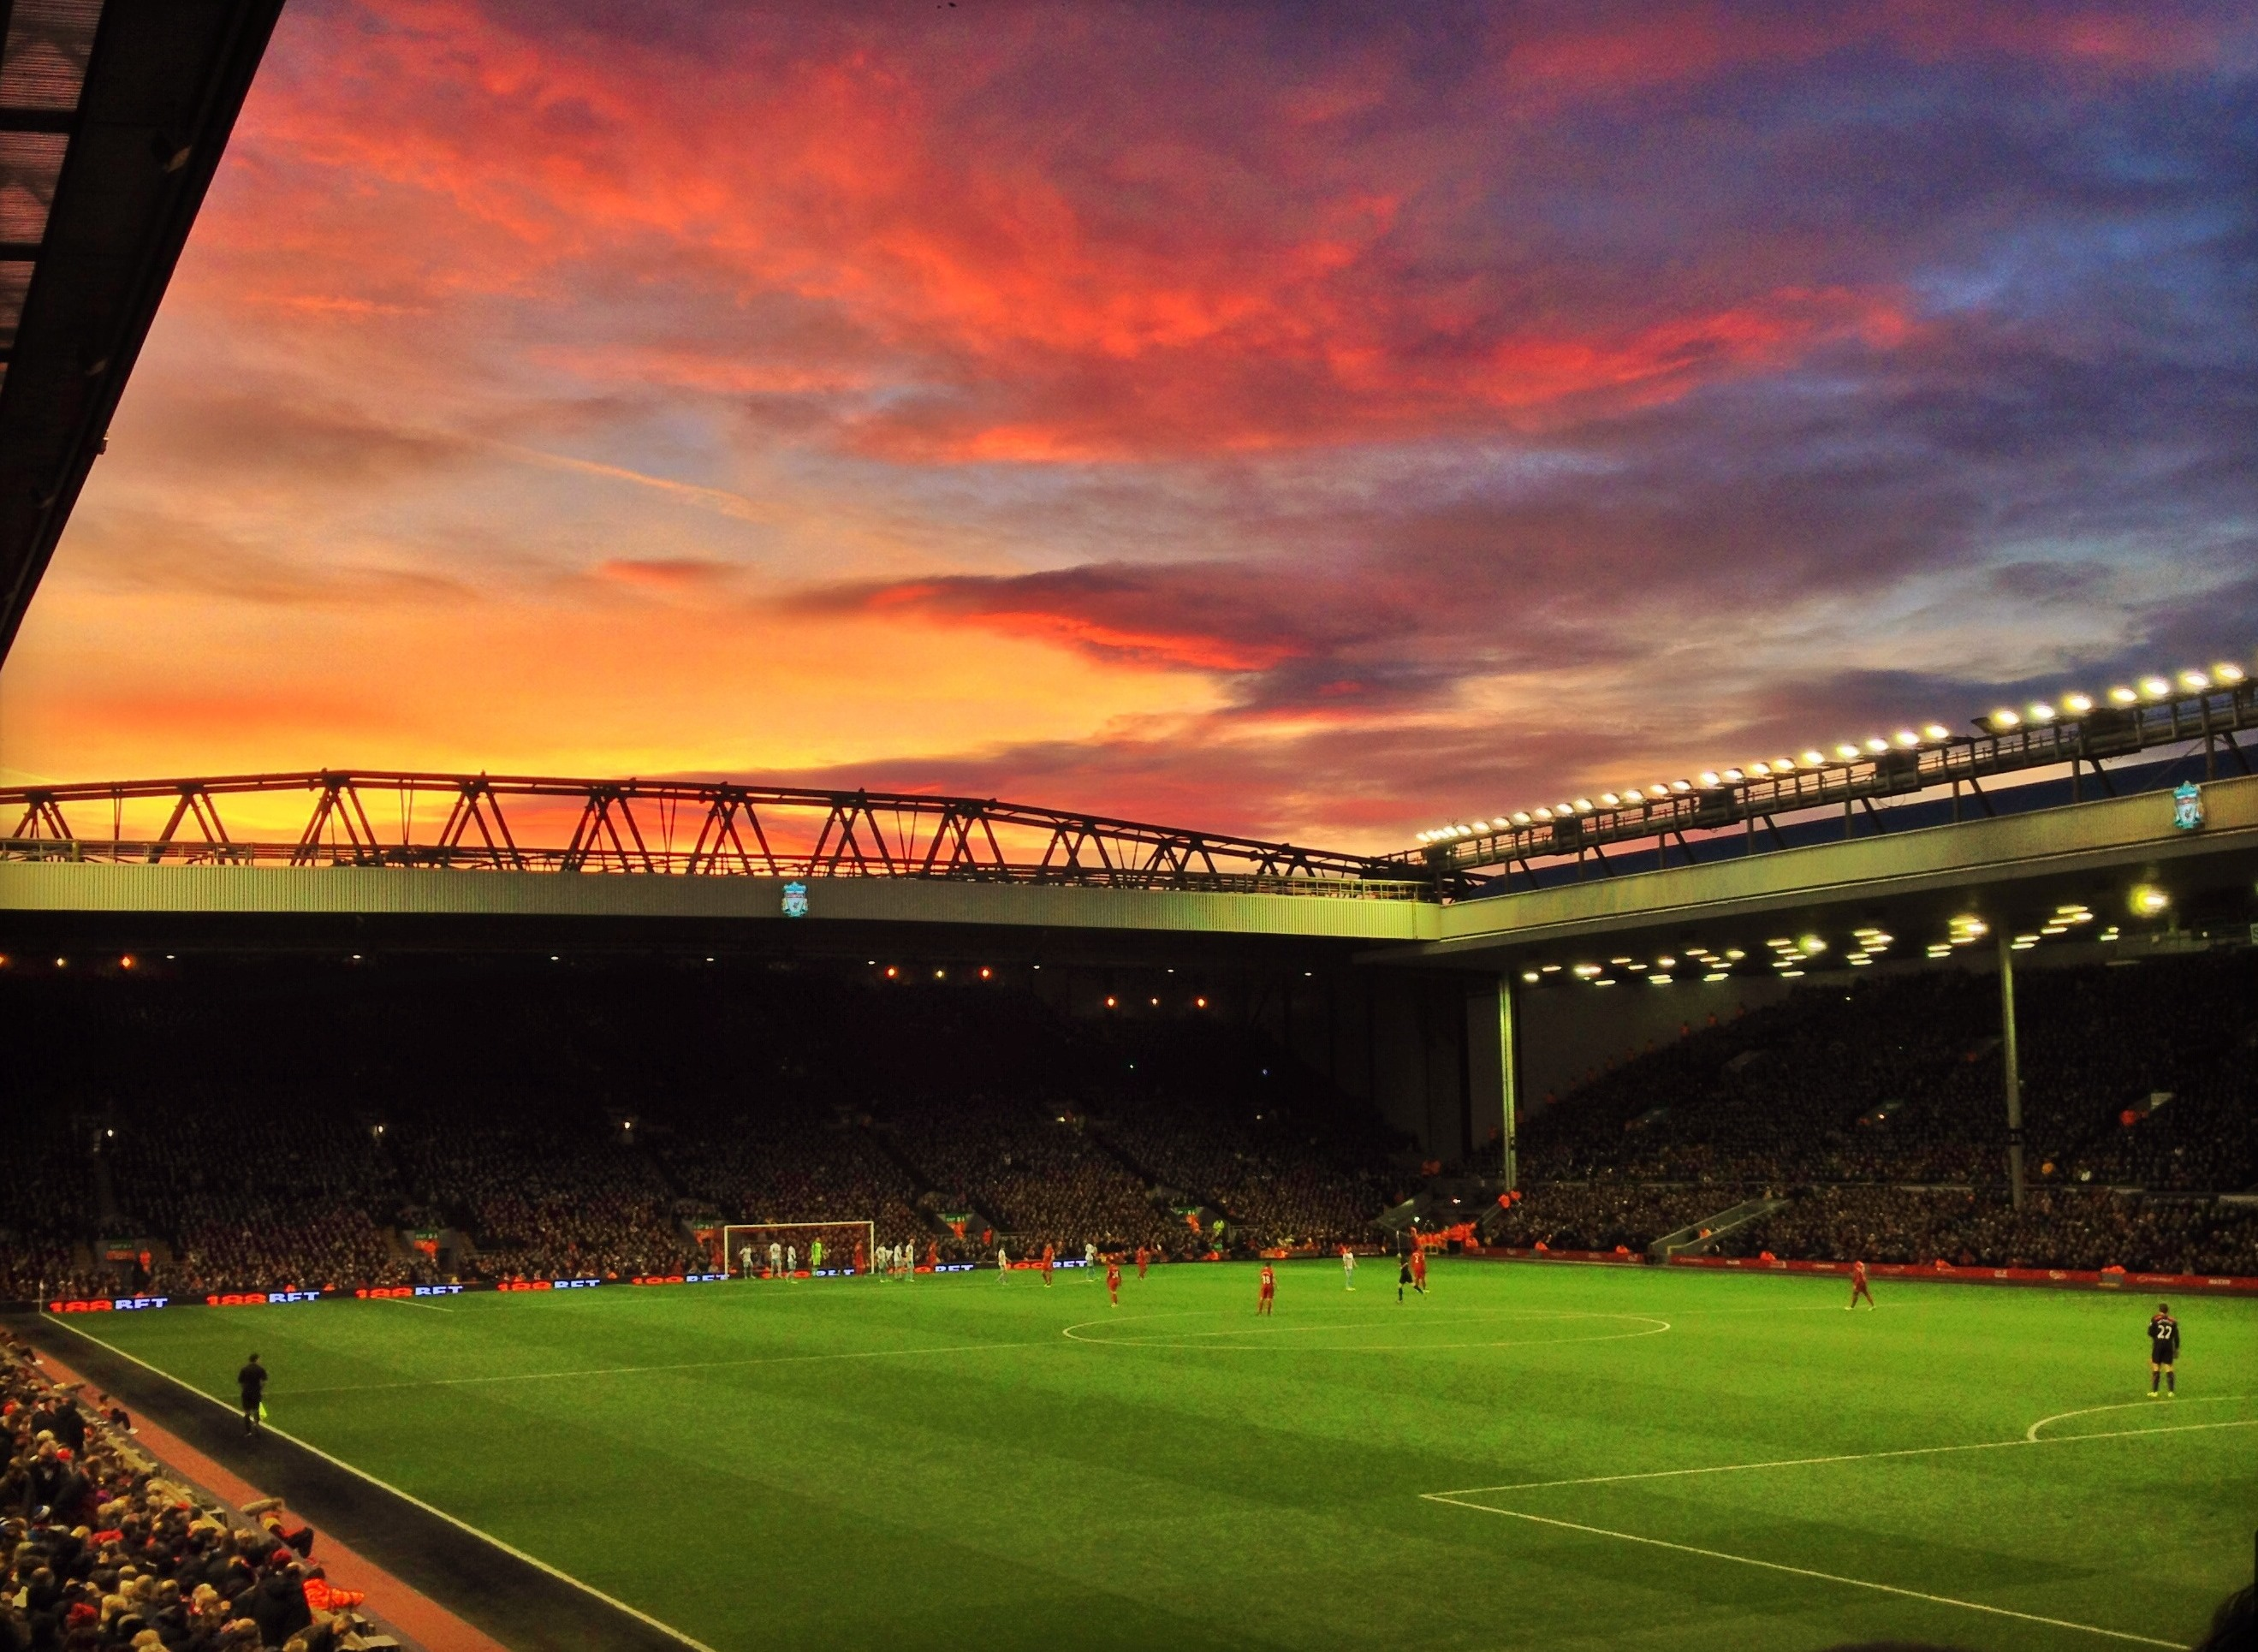 File:Anfield, 7 December 2013.jpg - Wikimedia Commons